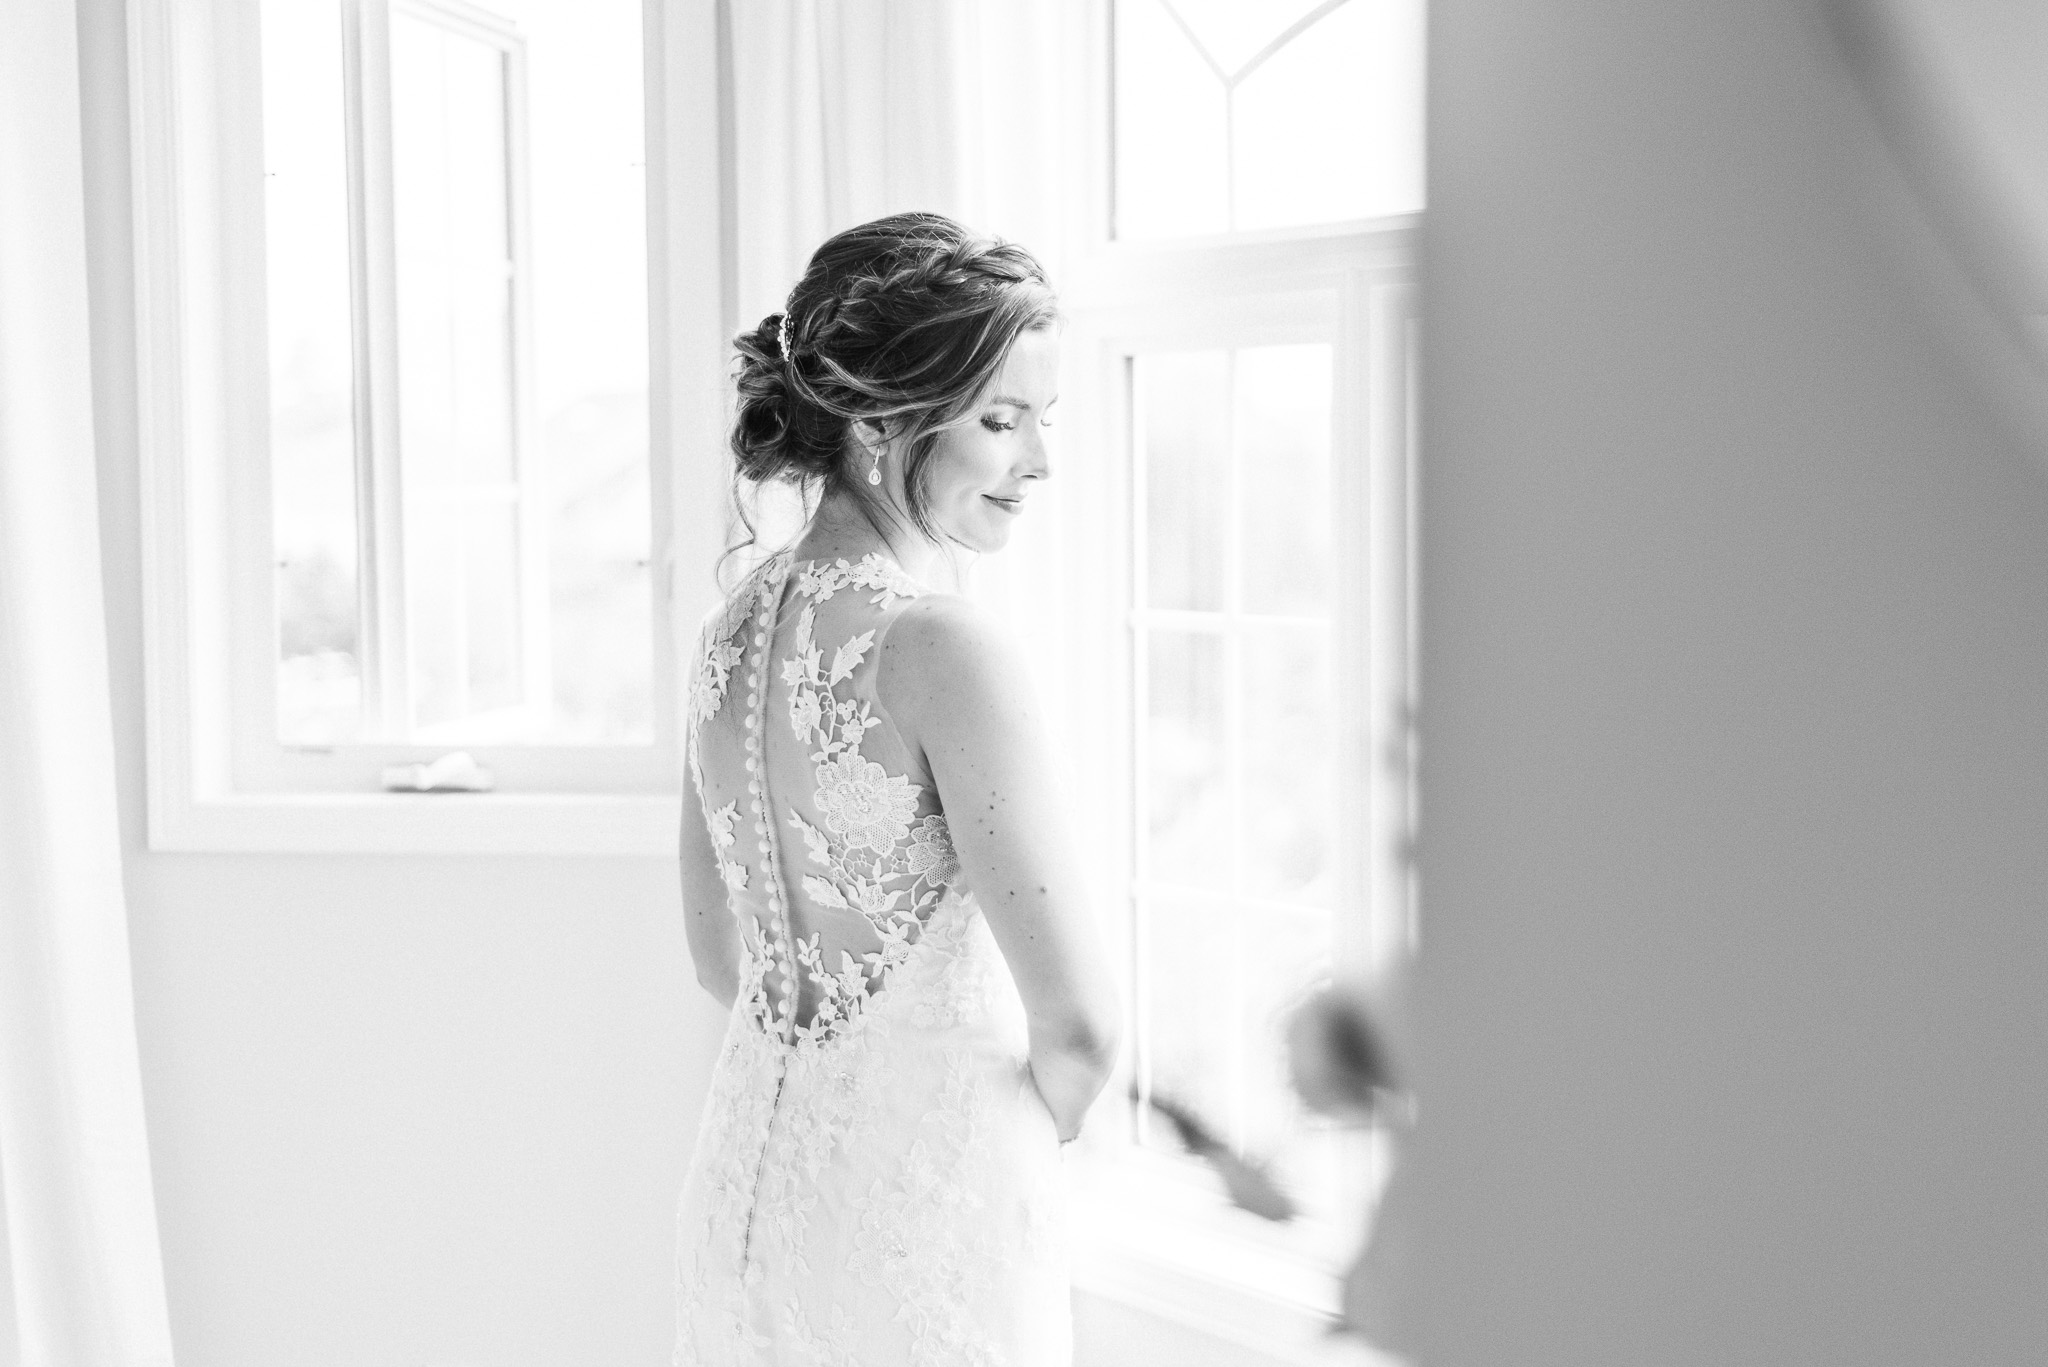 Jacquelin Bridals Canada lace gown photographed  by Jenn Kavanagh Photography.